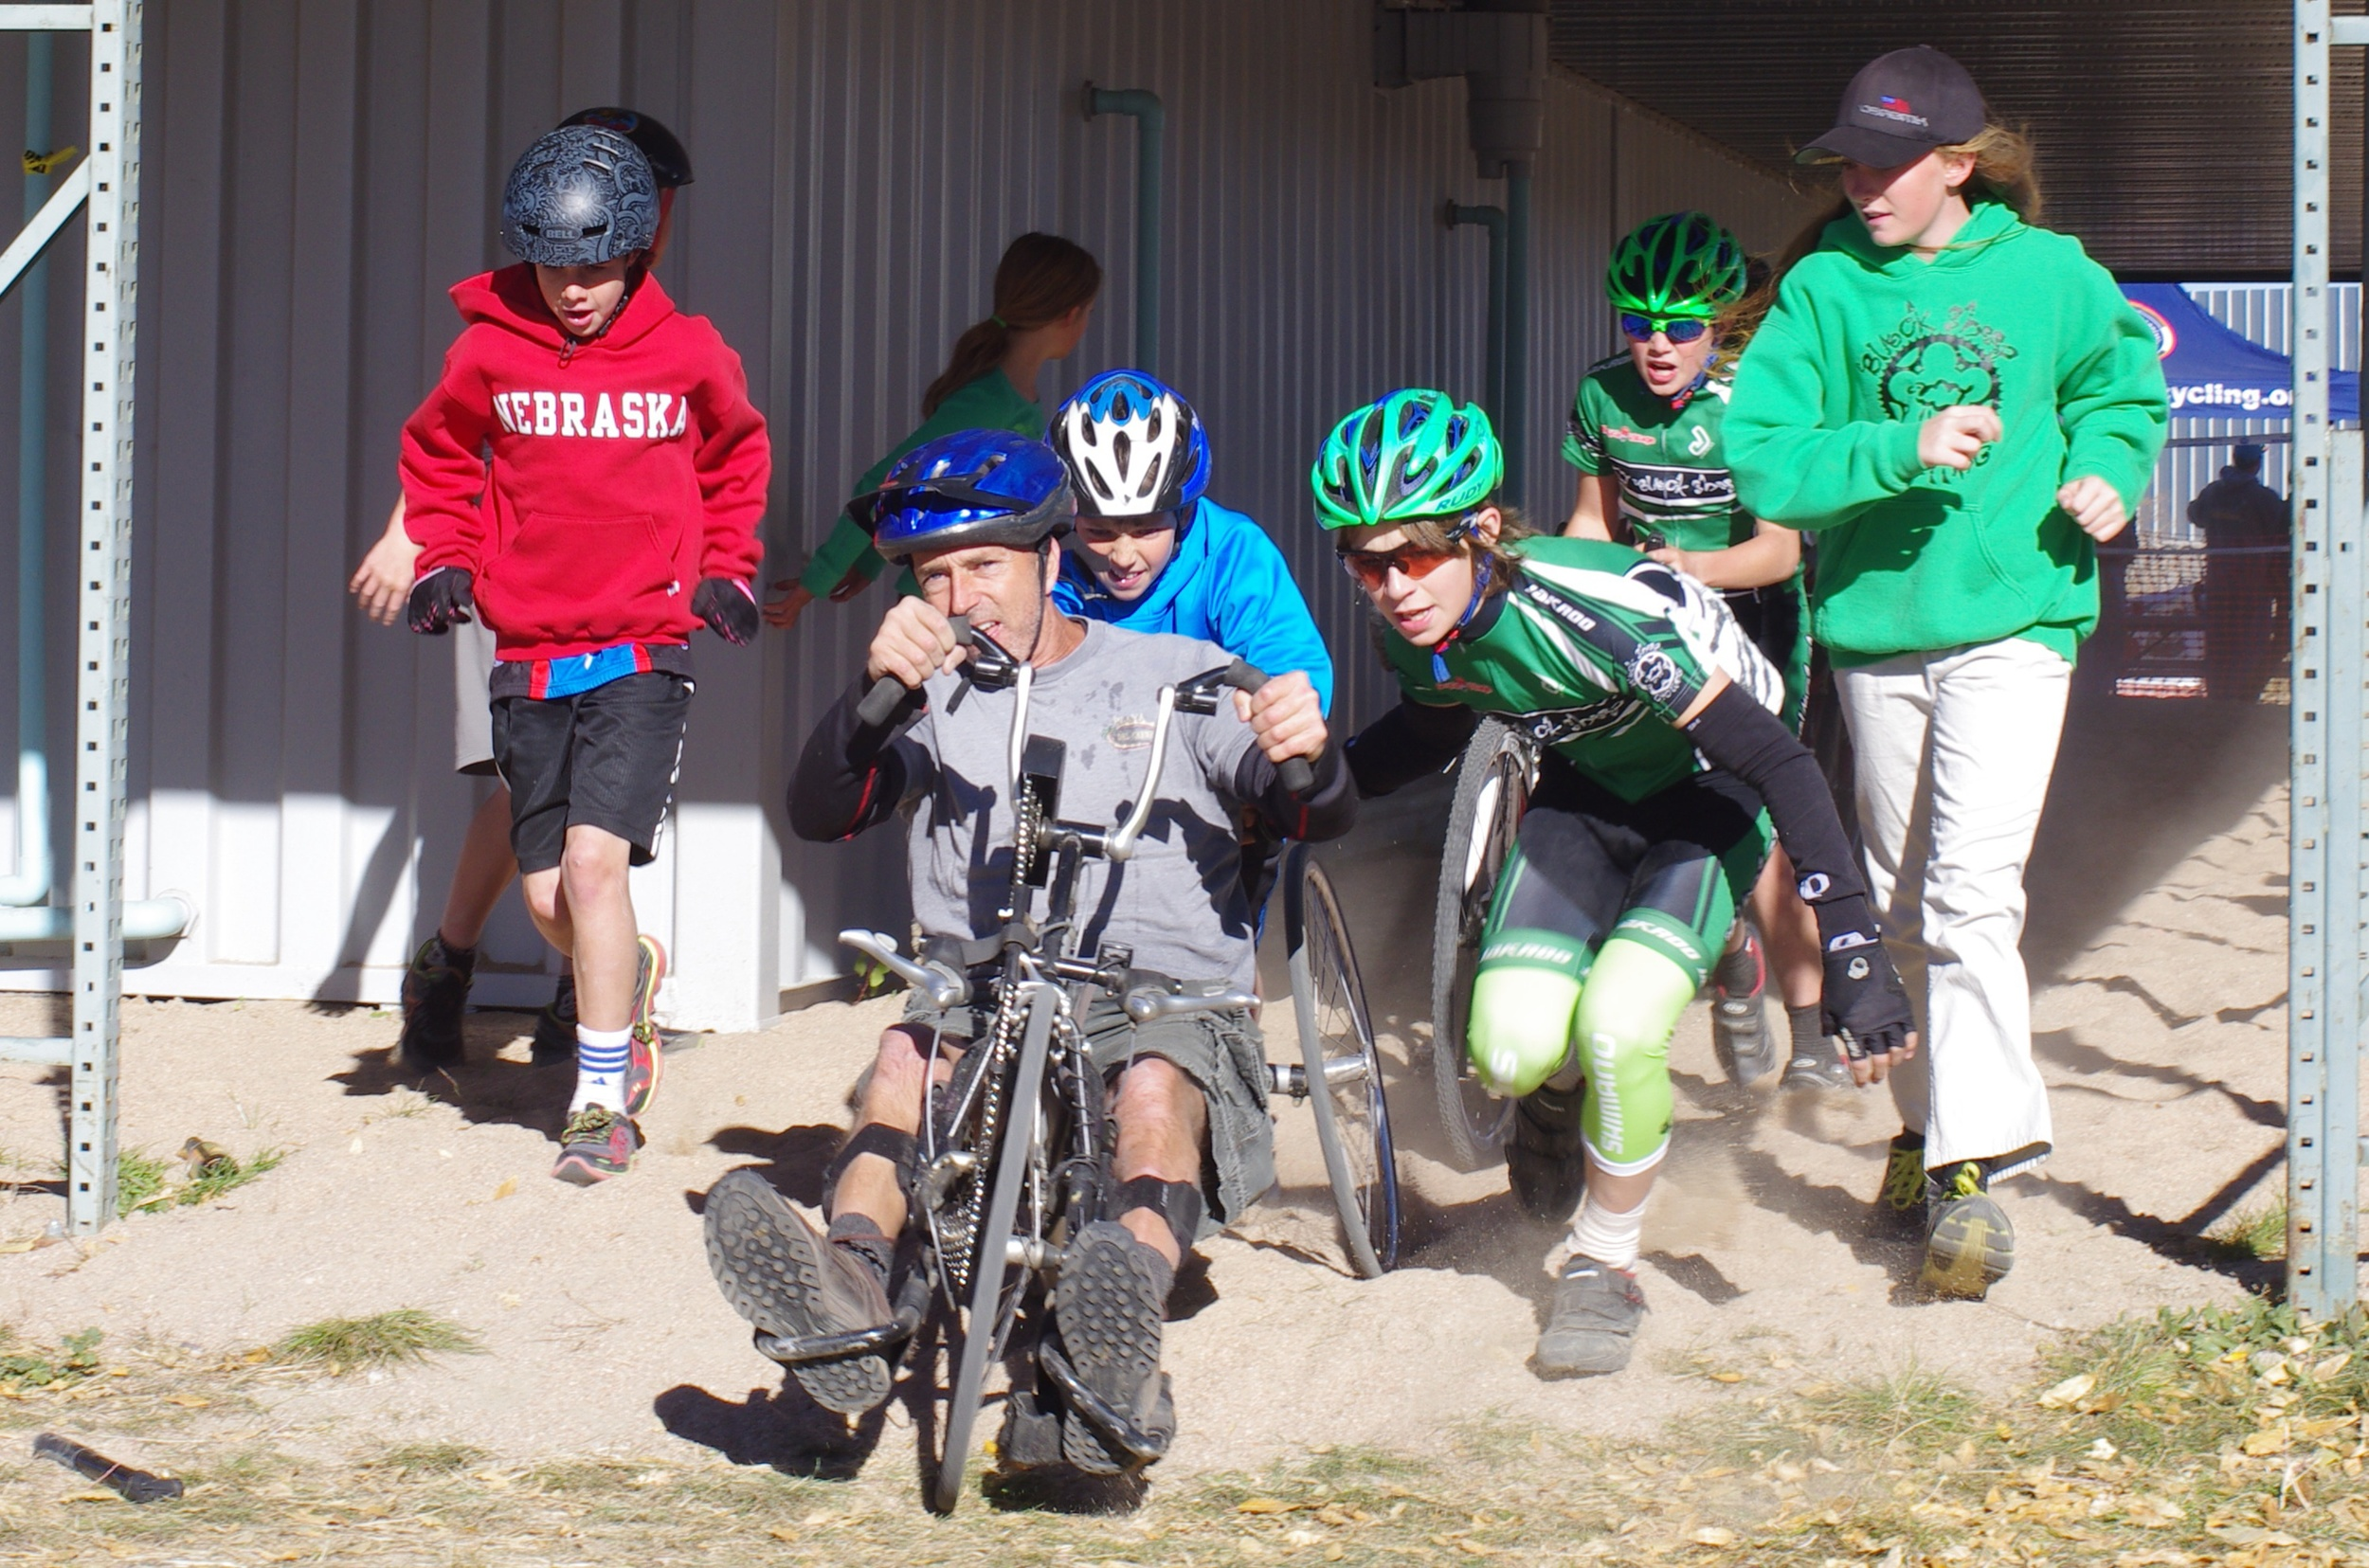 Kids helping the Adaptive class through the sand. Very cool!